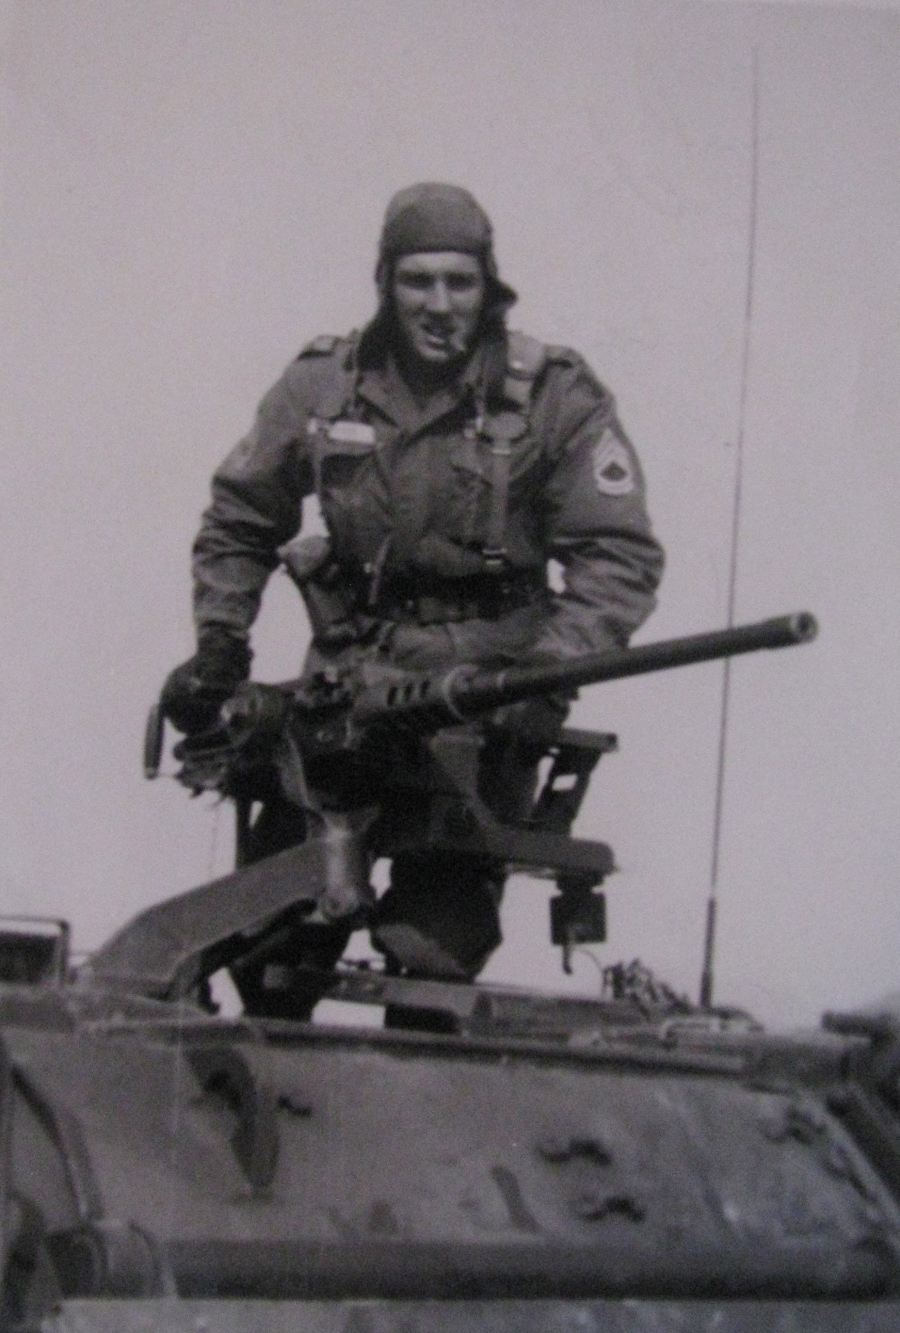 Sgt. Charles Dusek who served with the 25th Infantry Division during the Vietnam War is pictured atop an Armored Personnel Carrier with his .50 caliber machine-gun. He was a sergeant in Vietnam. Photo provided